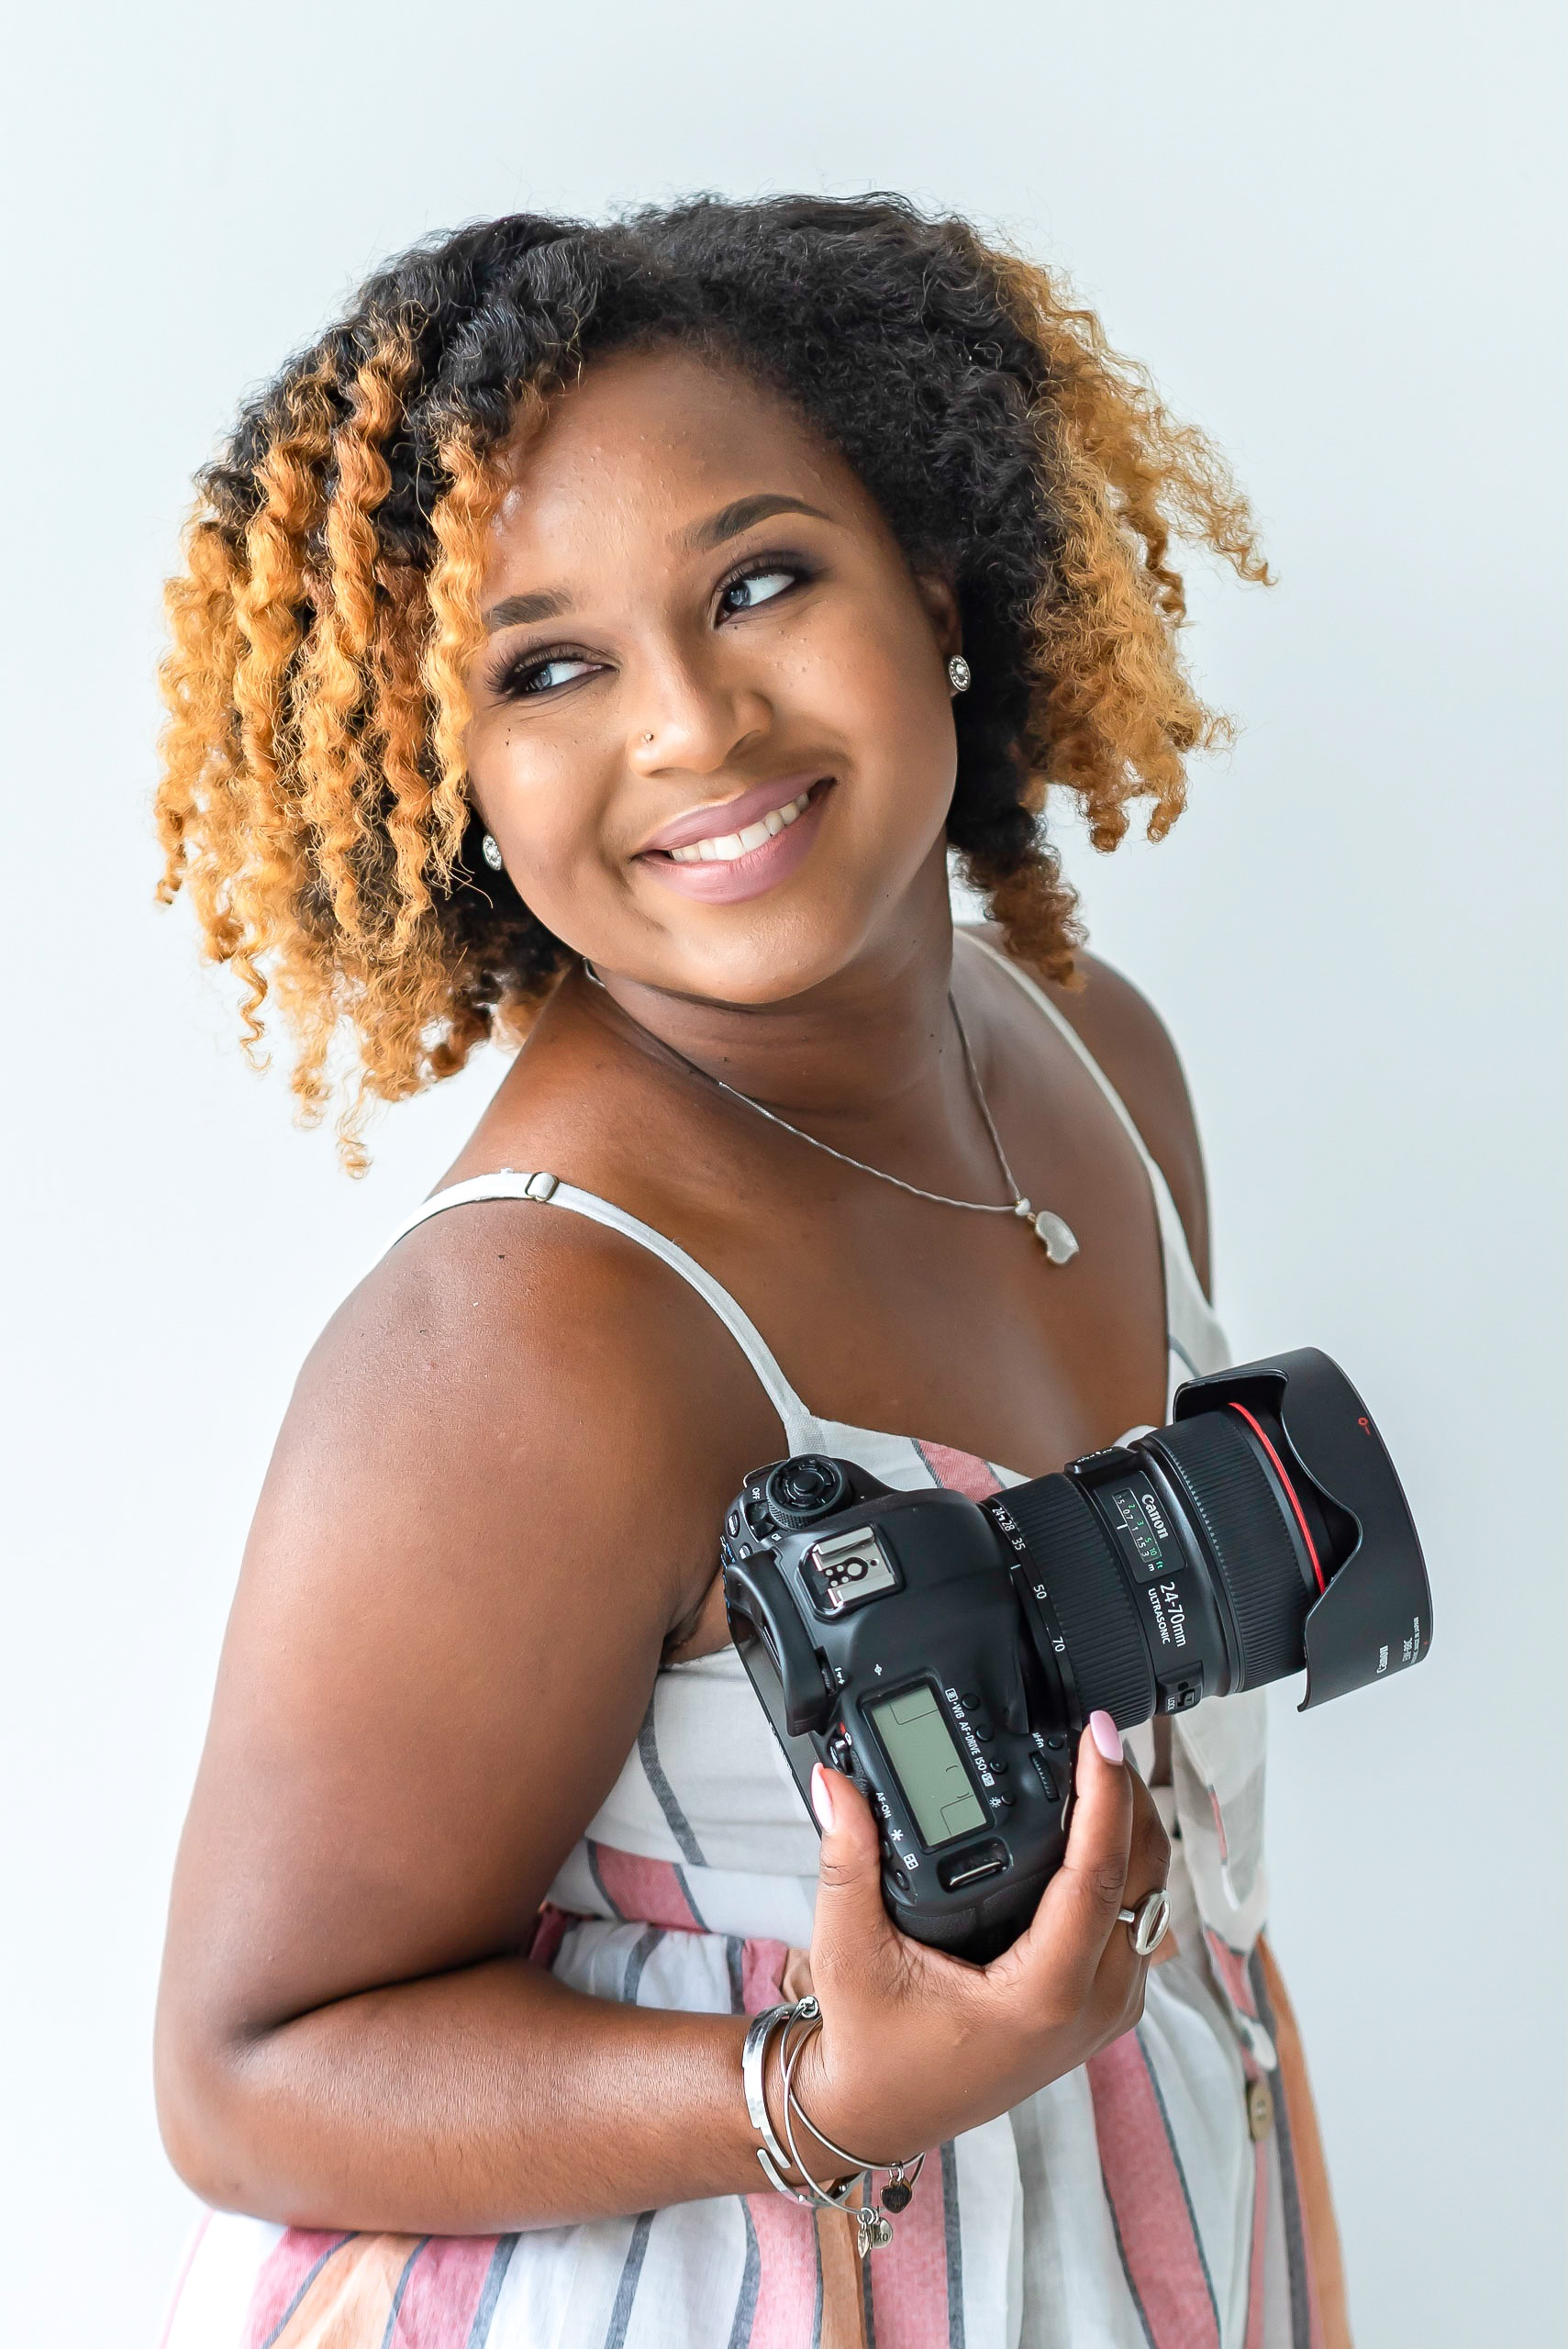 I'm Shekeidra -  a lifestyle branding & portrait photographer who loves working with phenomenal women who are intentional about humanizing the client experience by embracing who they are while showing what they do, how and why they do it!